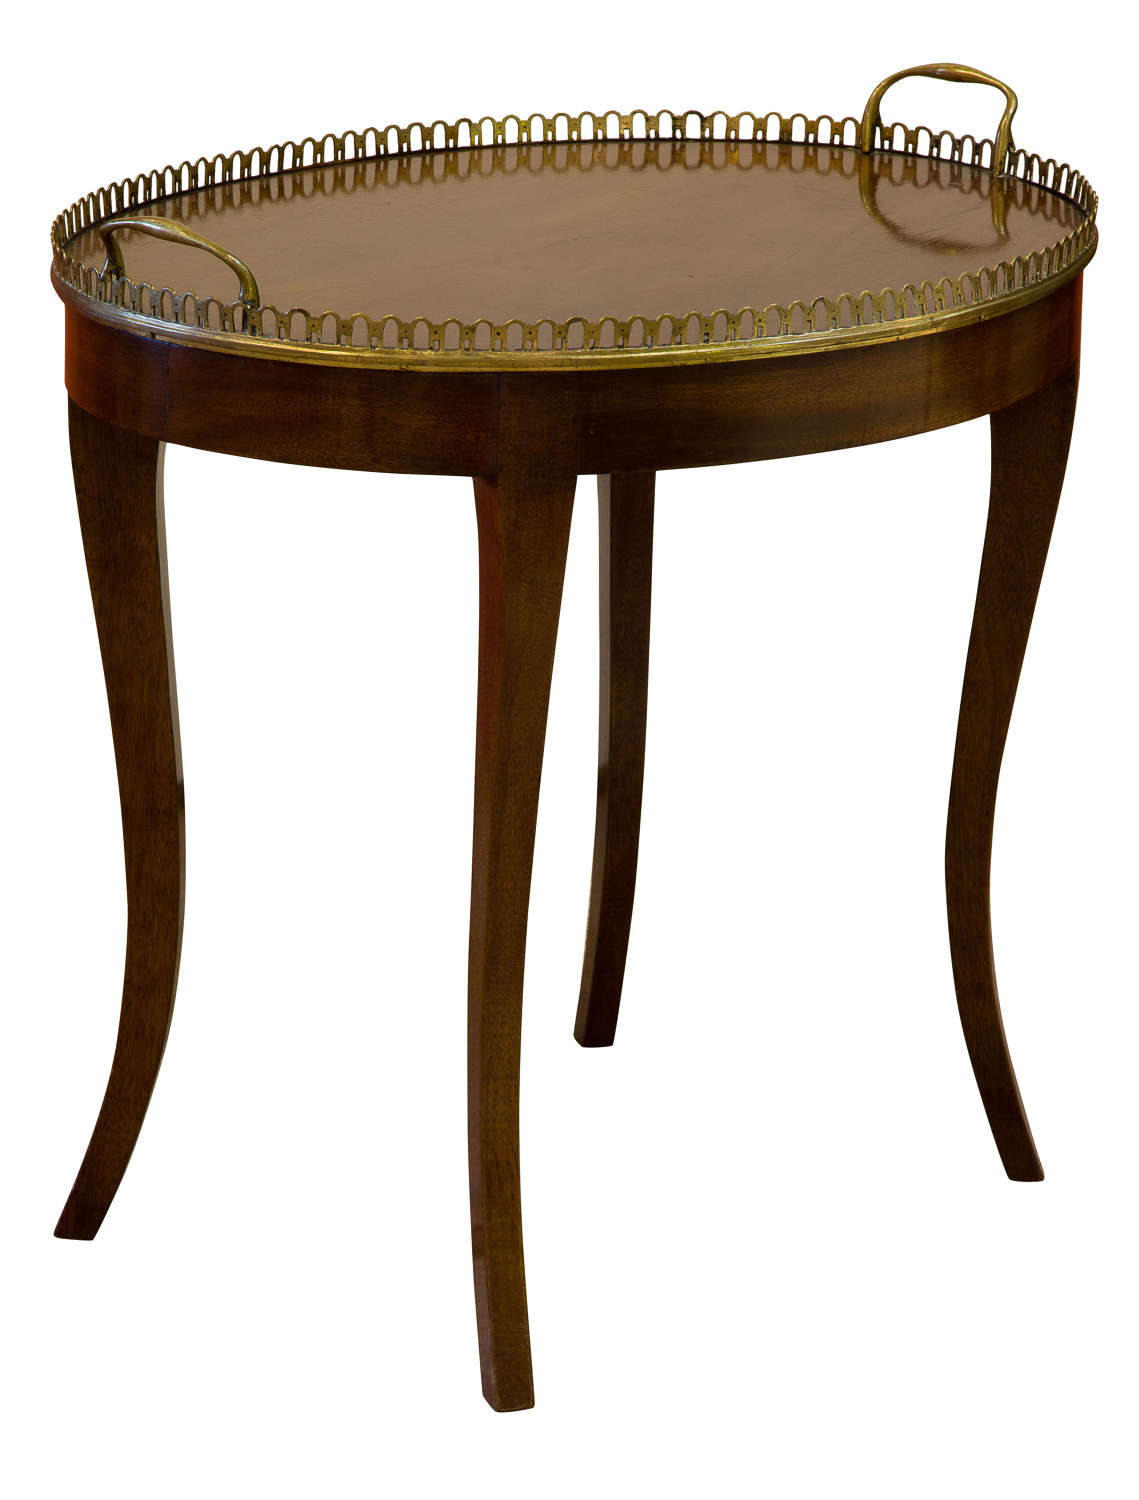 An Oval Mahogany Occasional Table